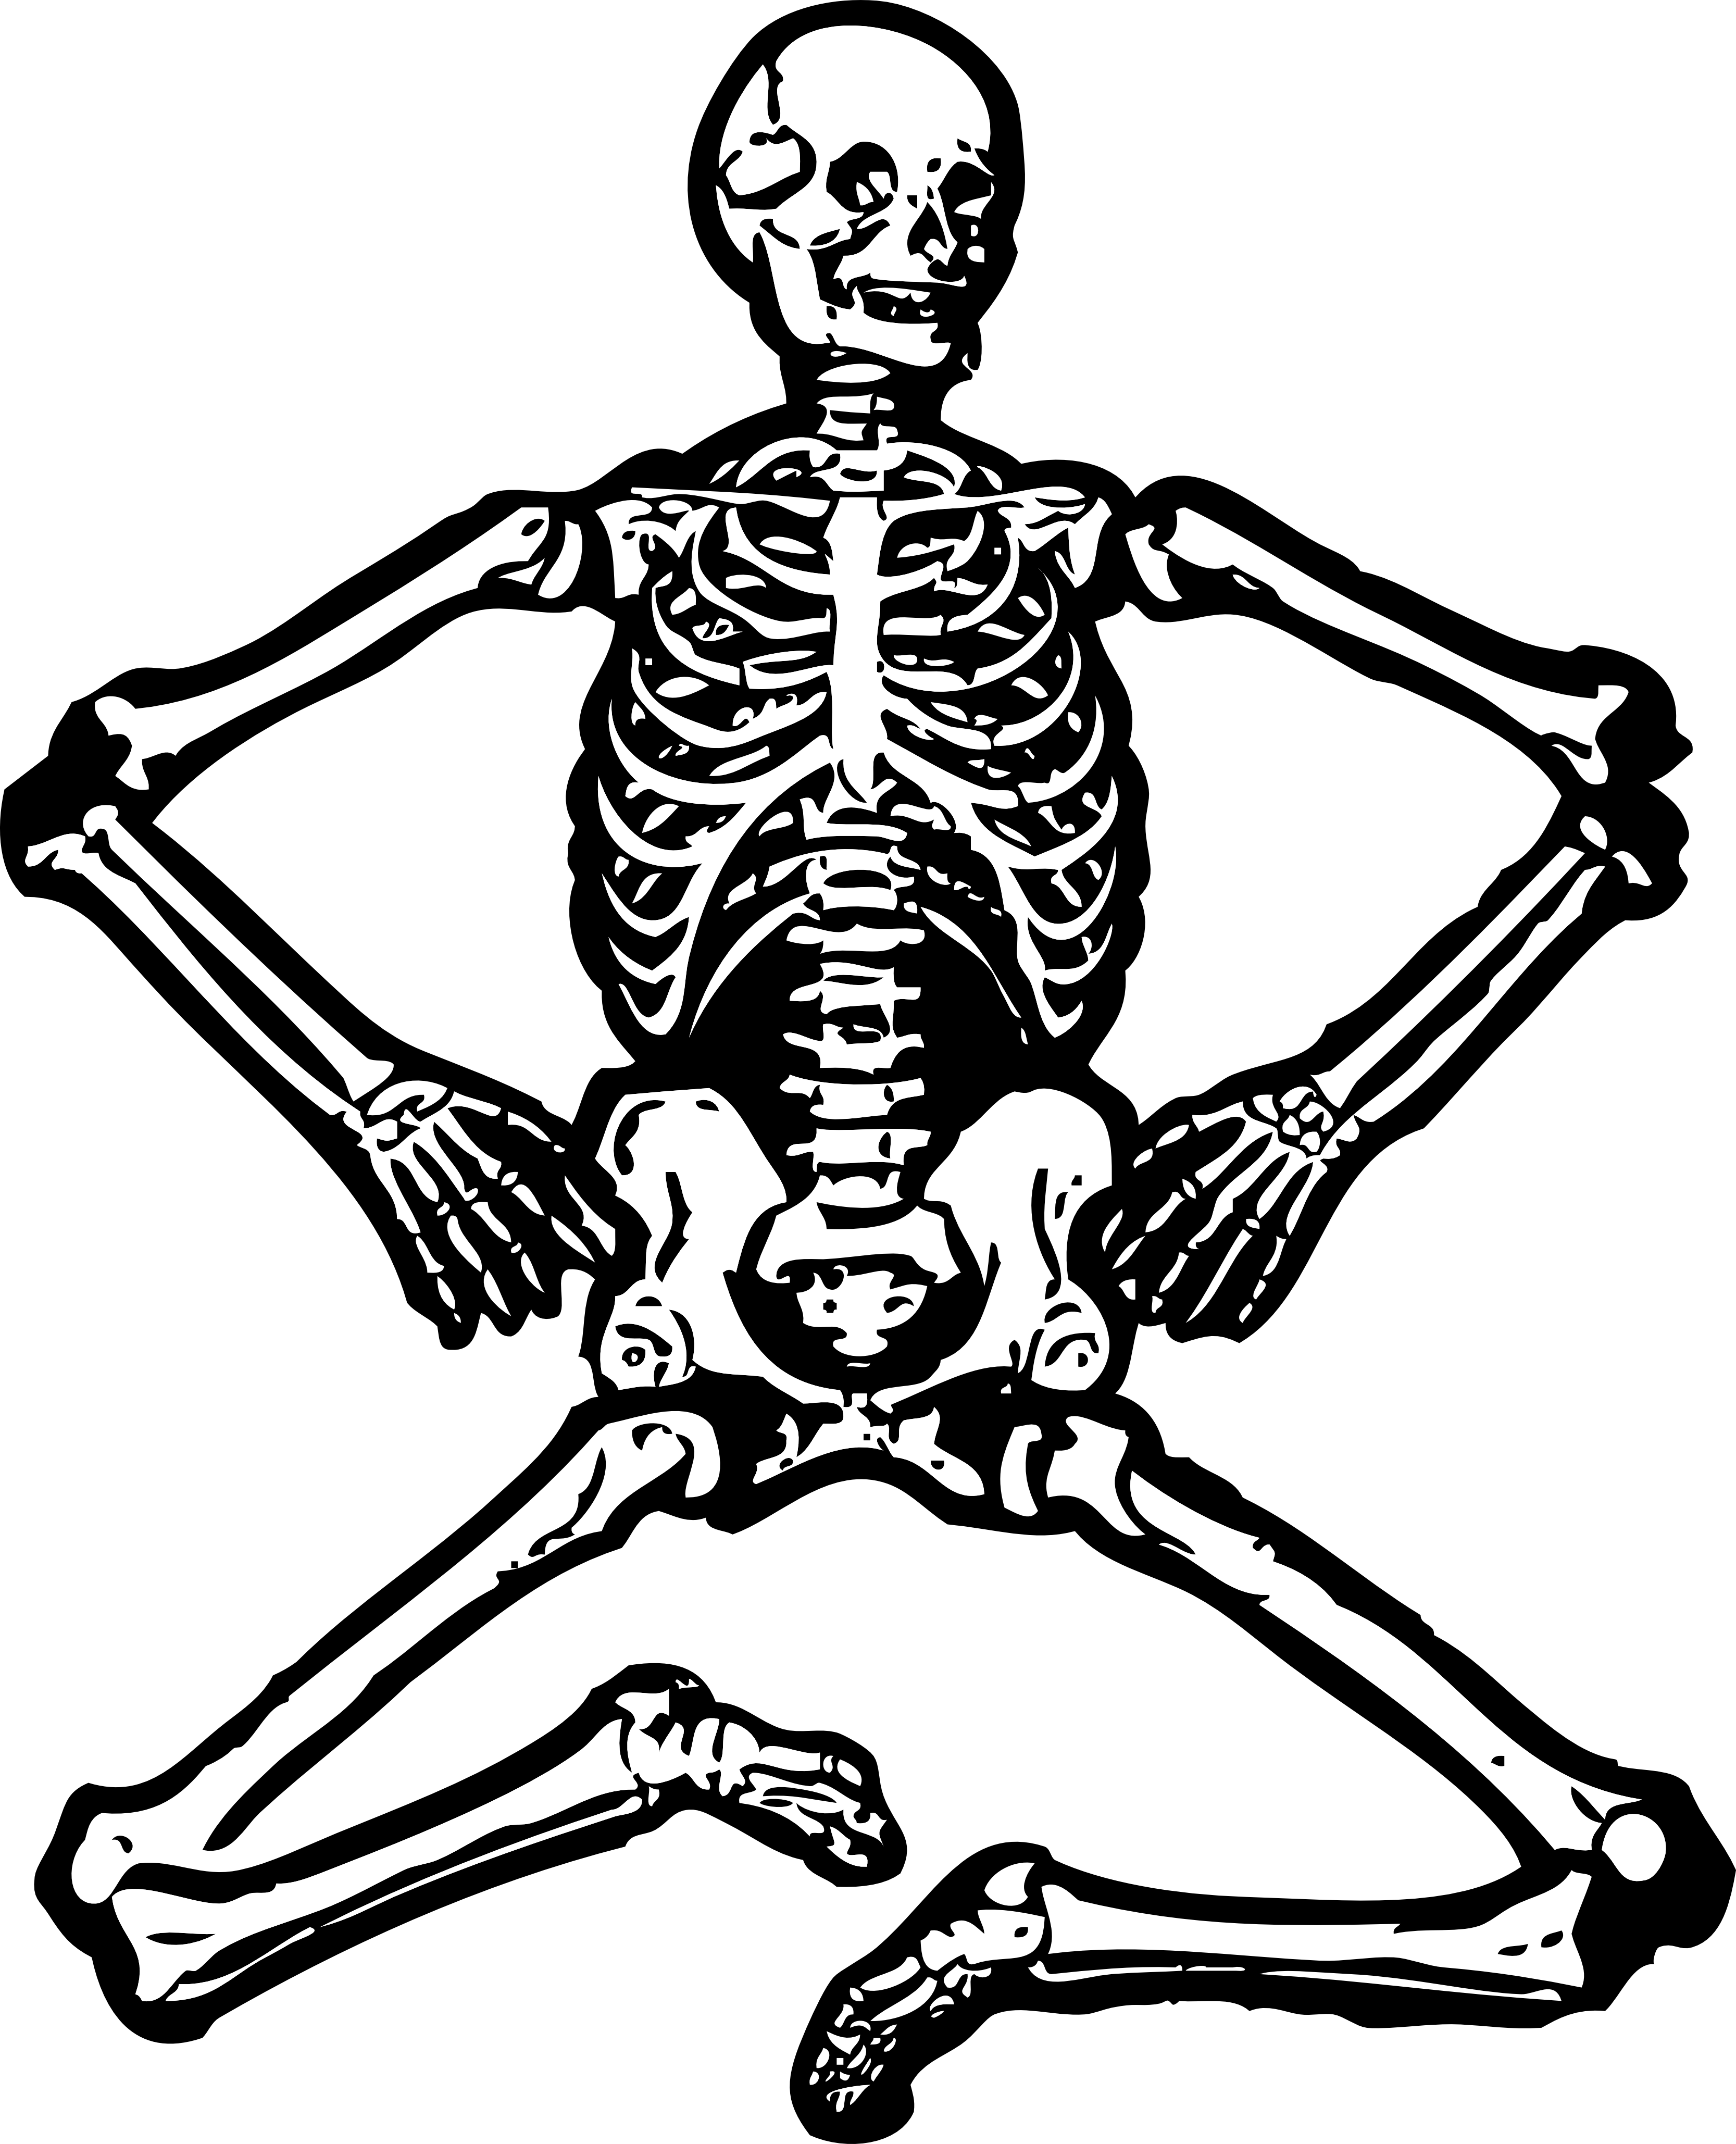 Skeleton clip art free clipart images 3.